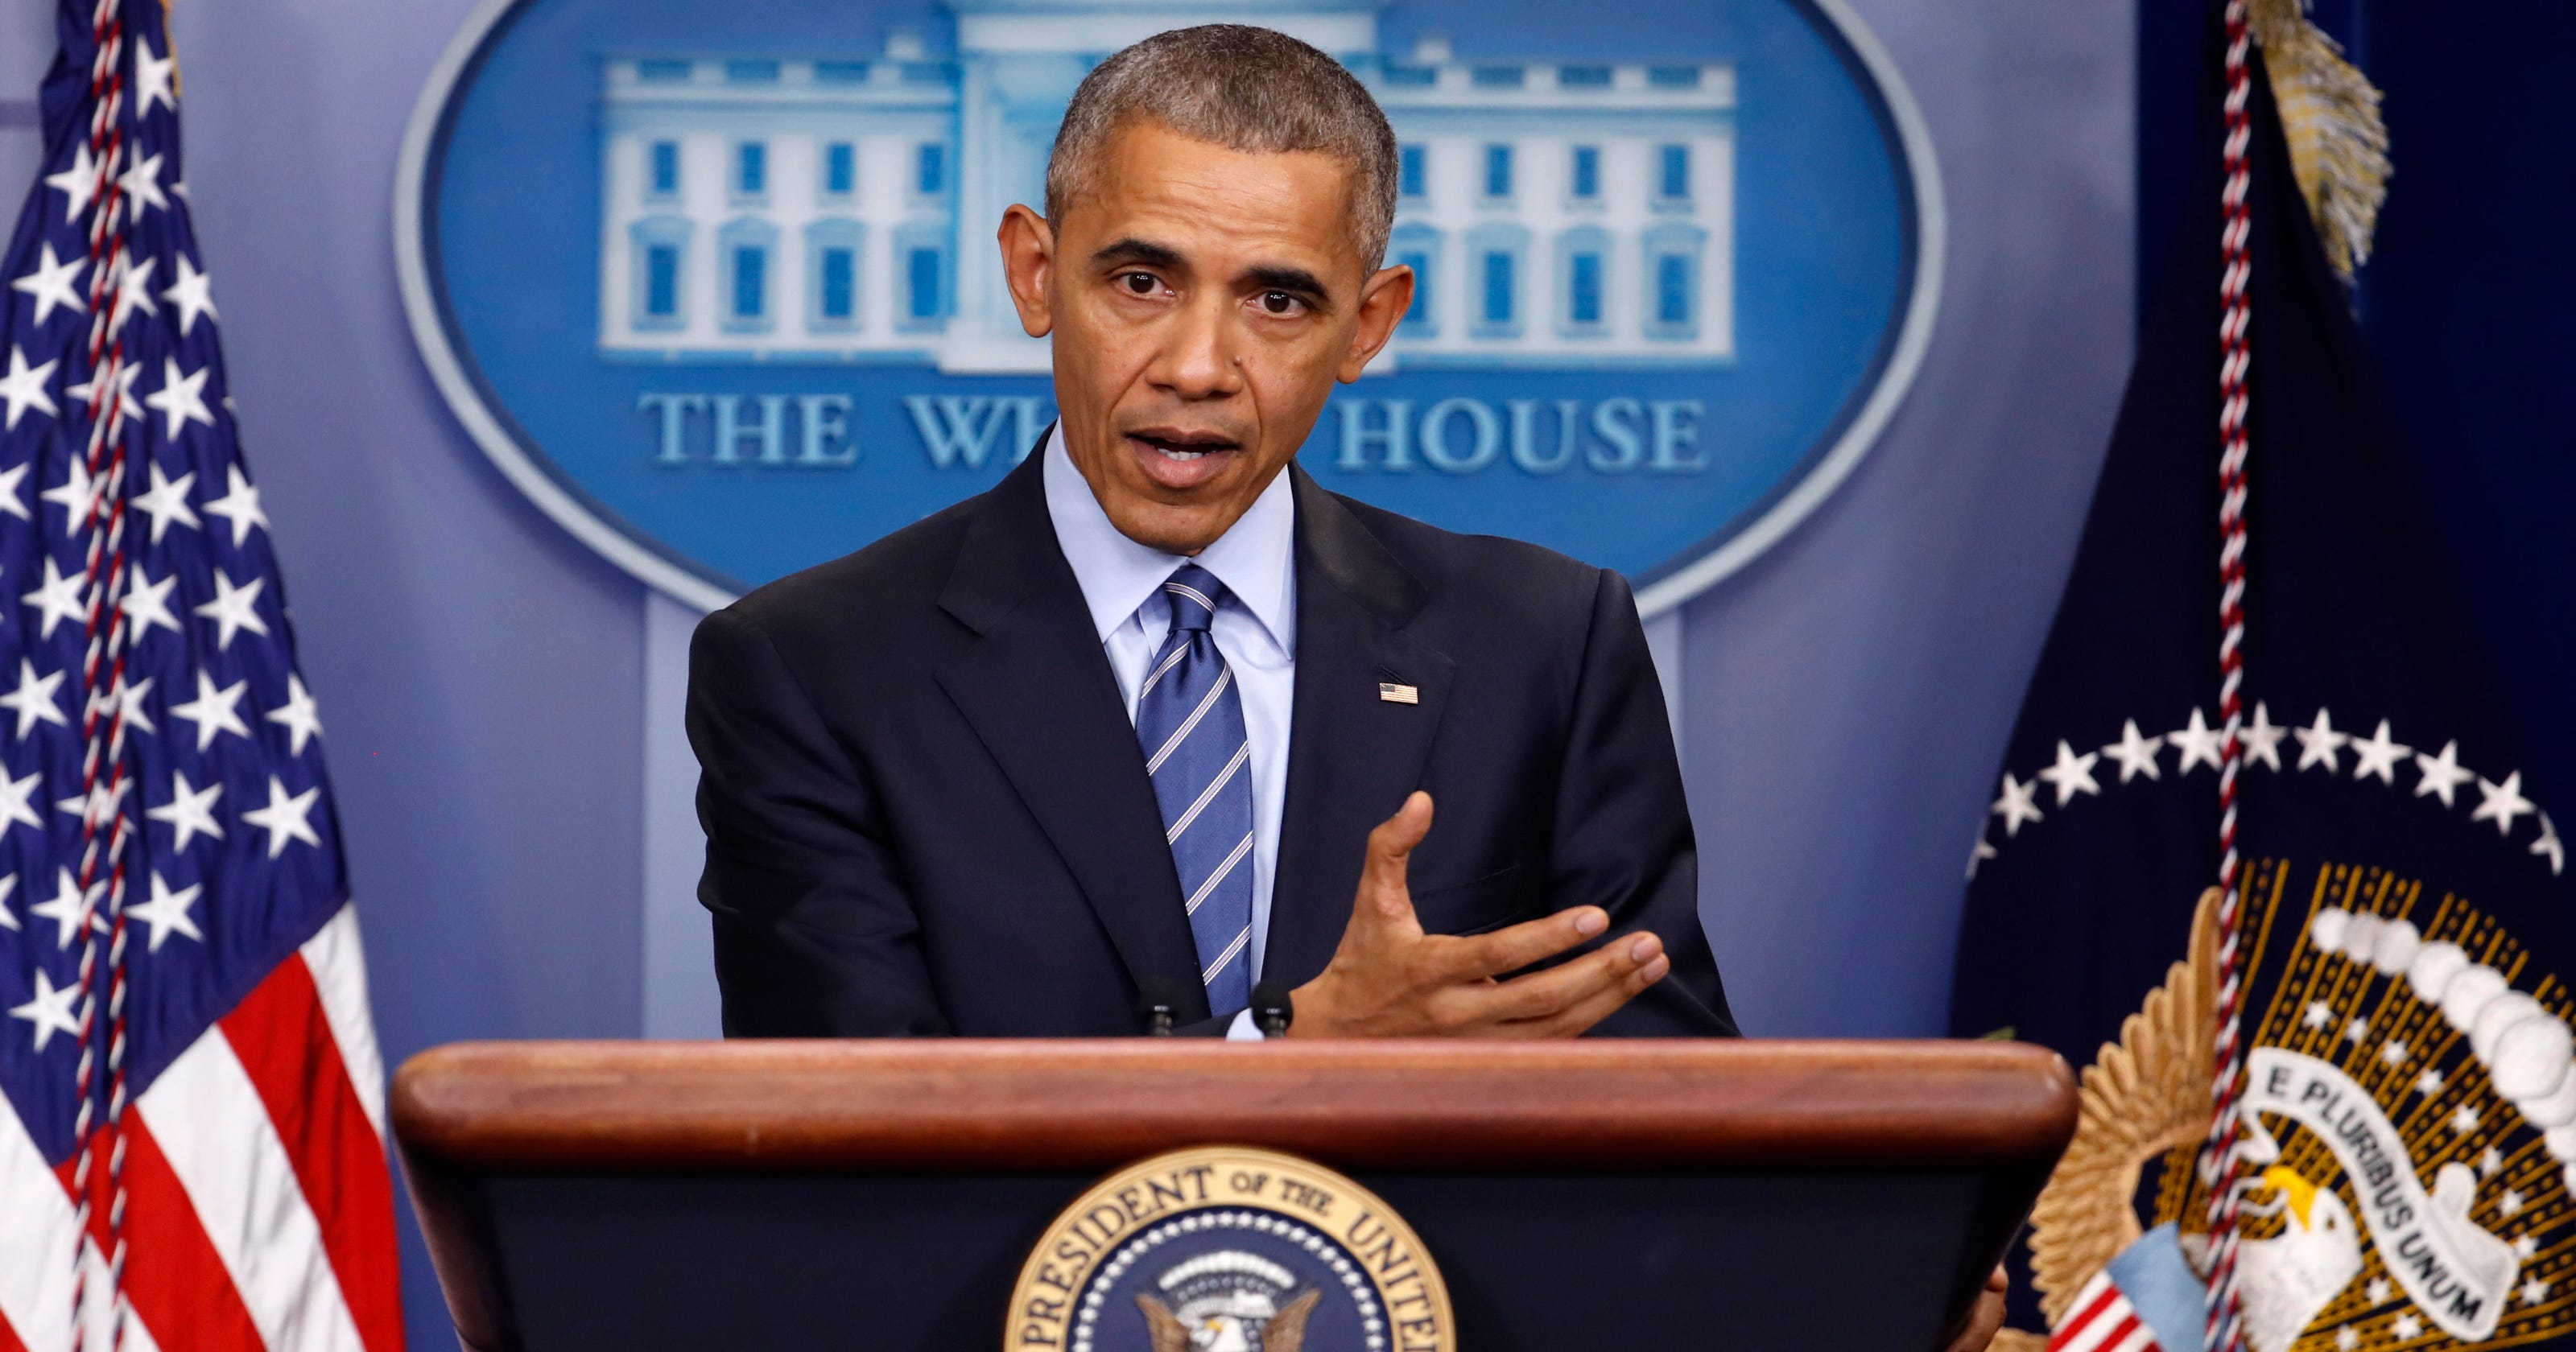 Obama: \'We handled it the way it should have been handled\'